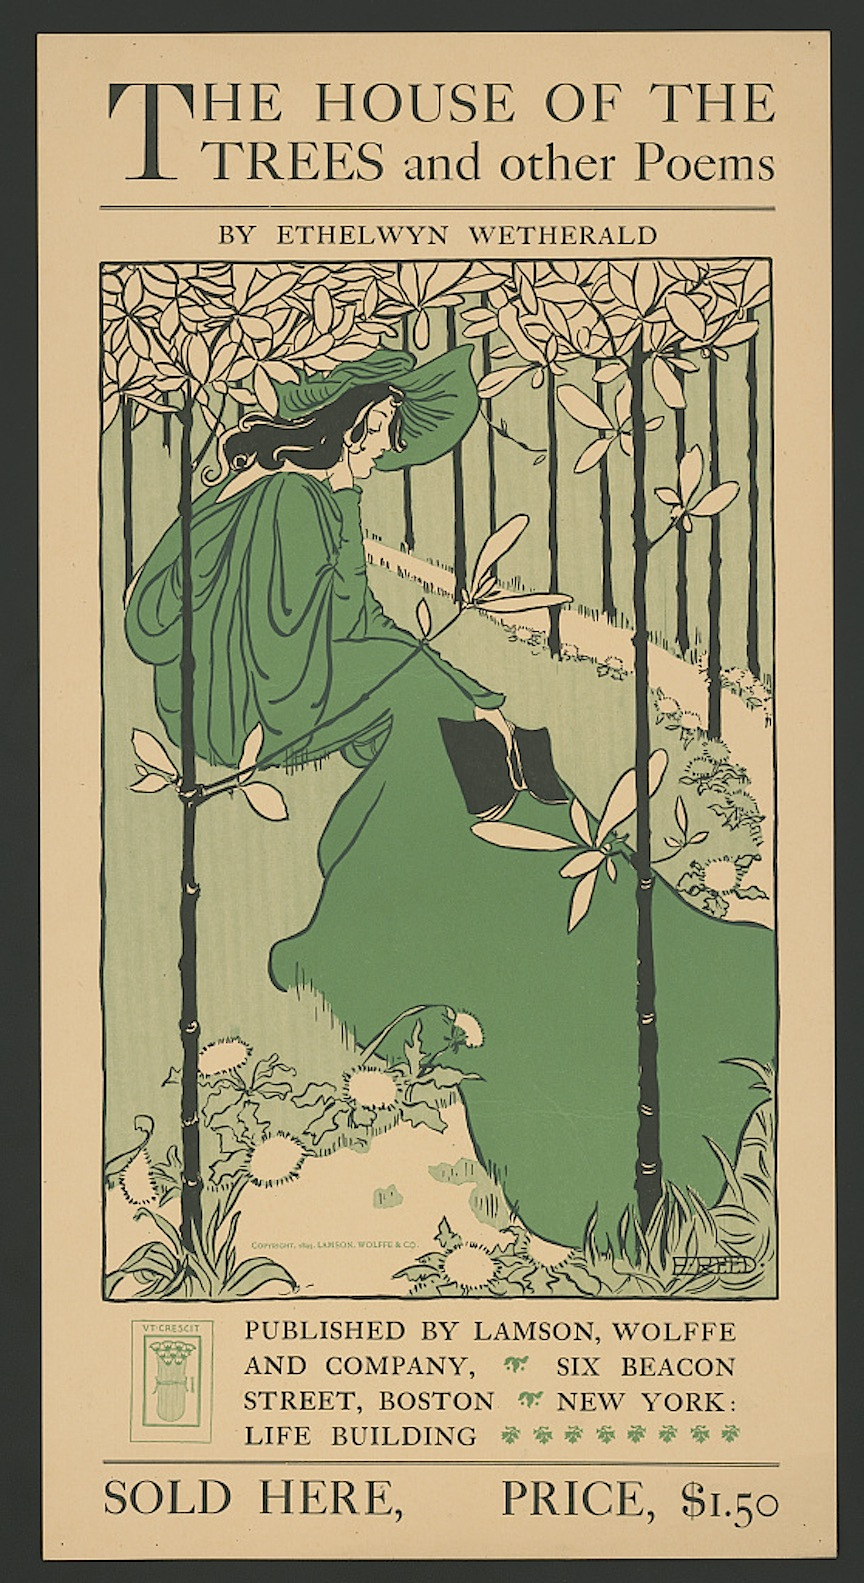 A poster by Ethel Reed, The house of the trees and other poems by Ethelwyn Wetherald Boston : Lamson, Wolffe, 1895, courtesy of the Library of Congress Prints and Photographs Division Washington, D.C